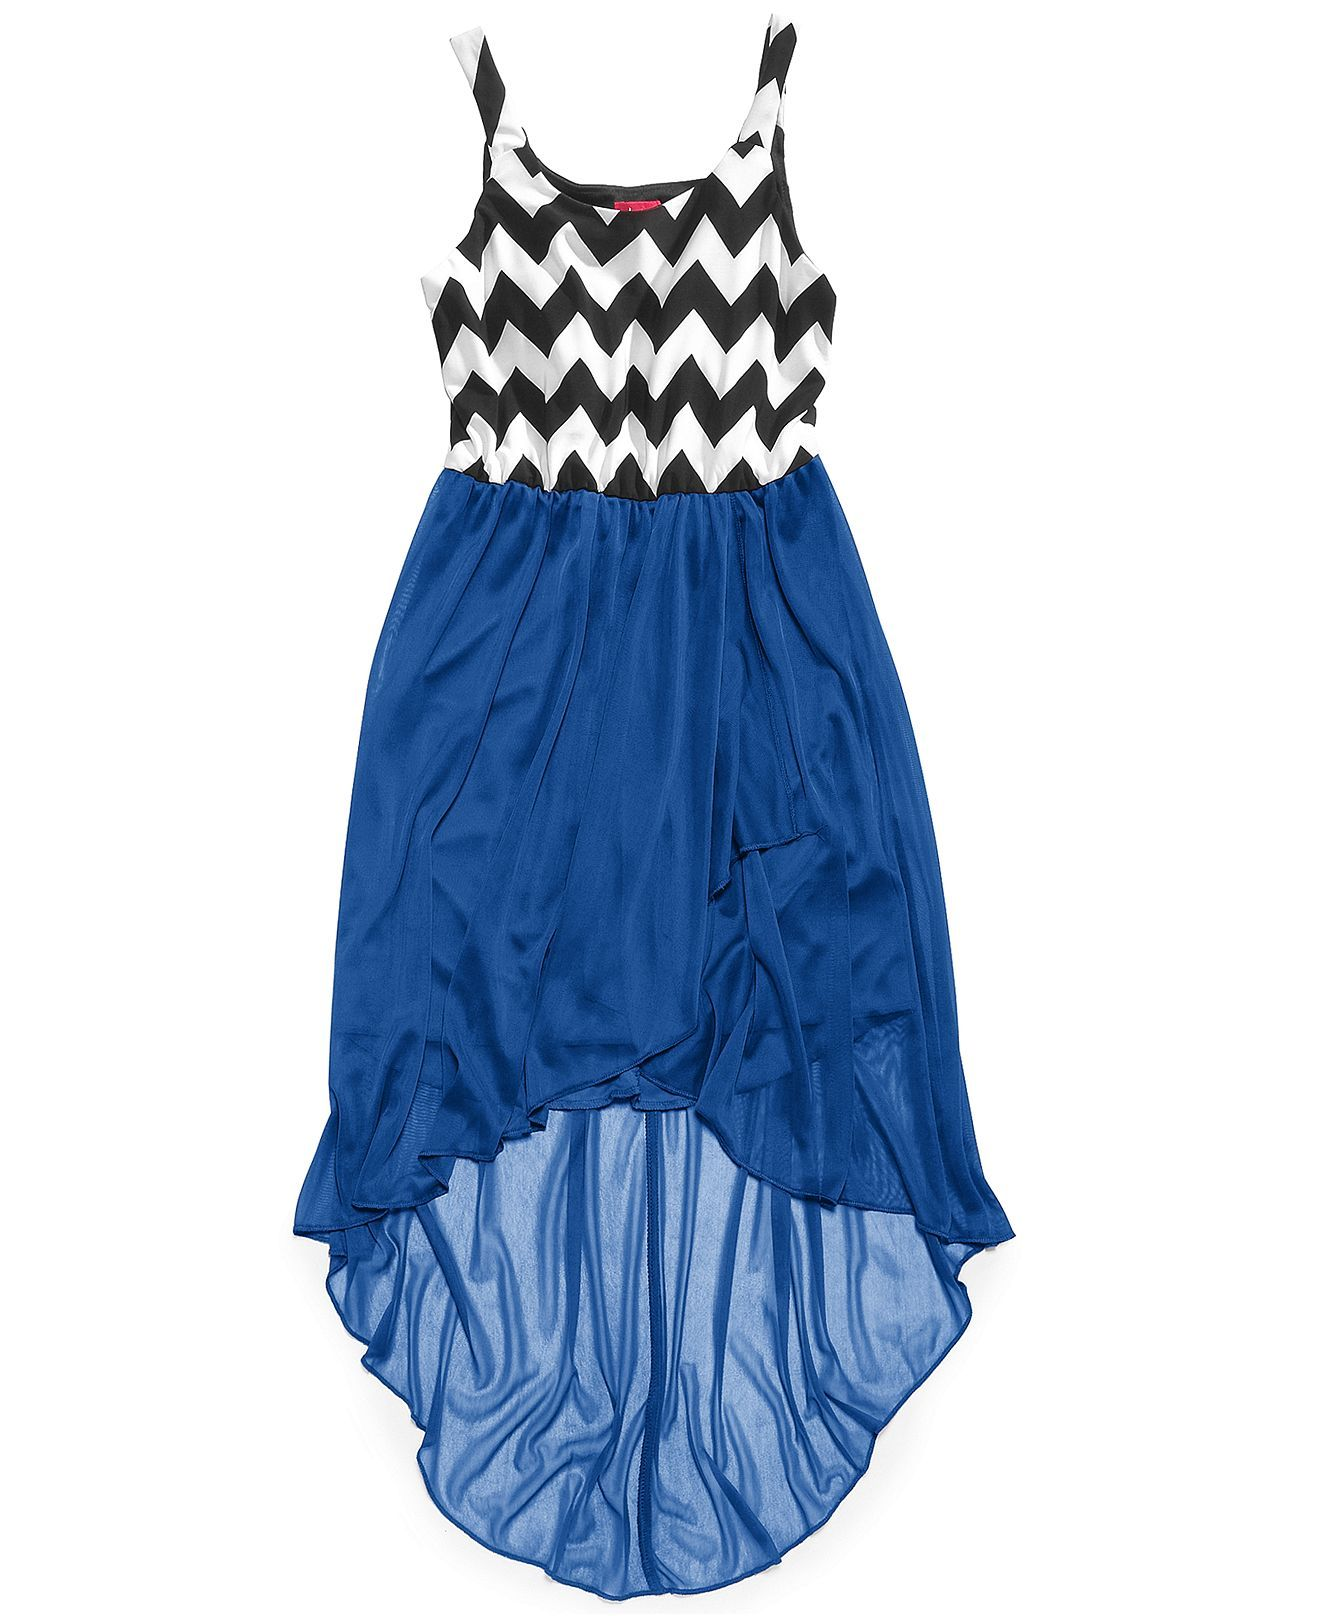 Ruby Rox Girls' Chevron-Print High-Low Dress - Kids Girls 7-16 ...